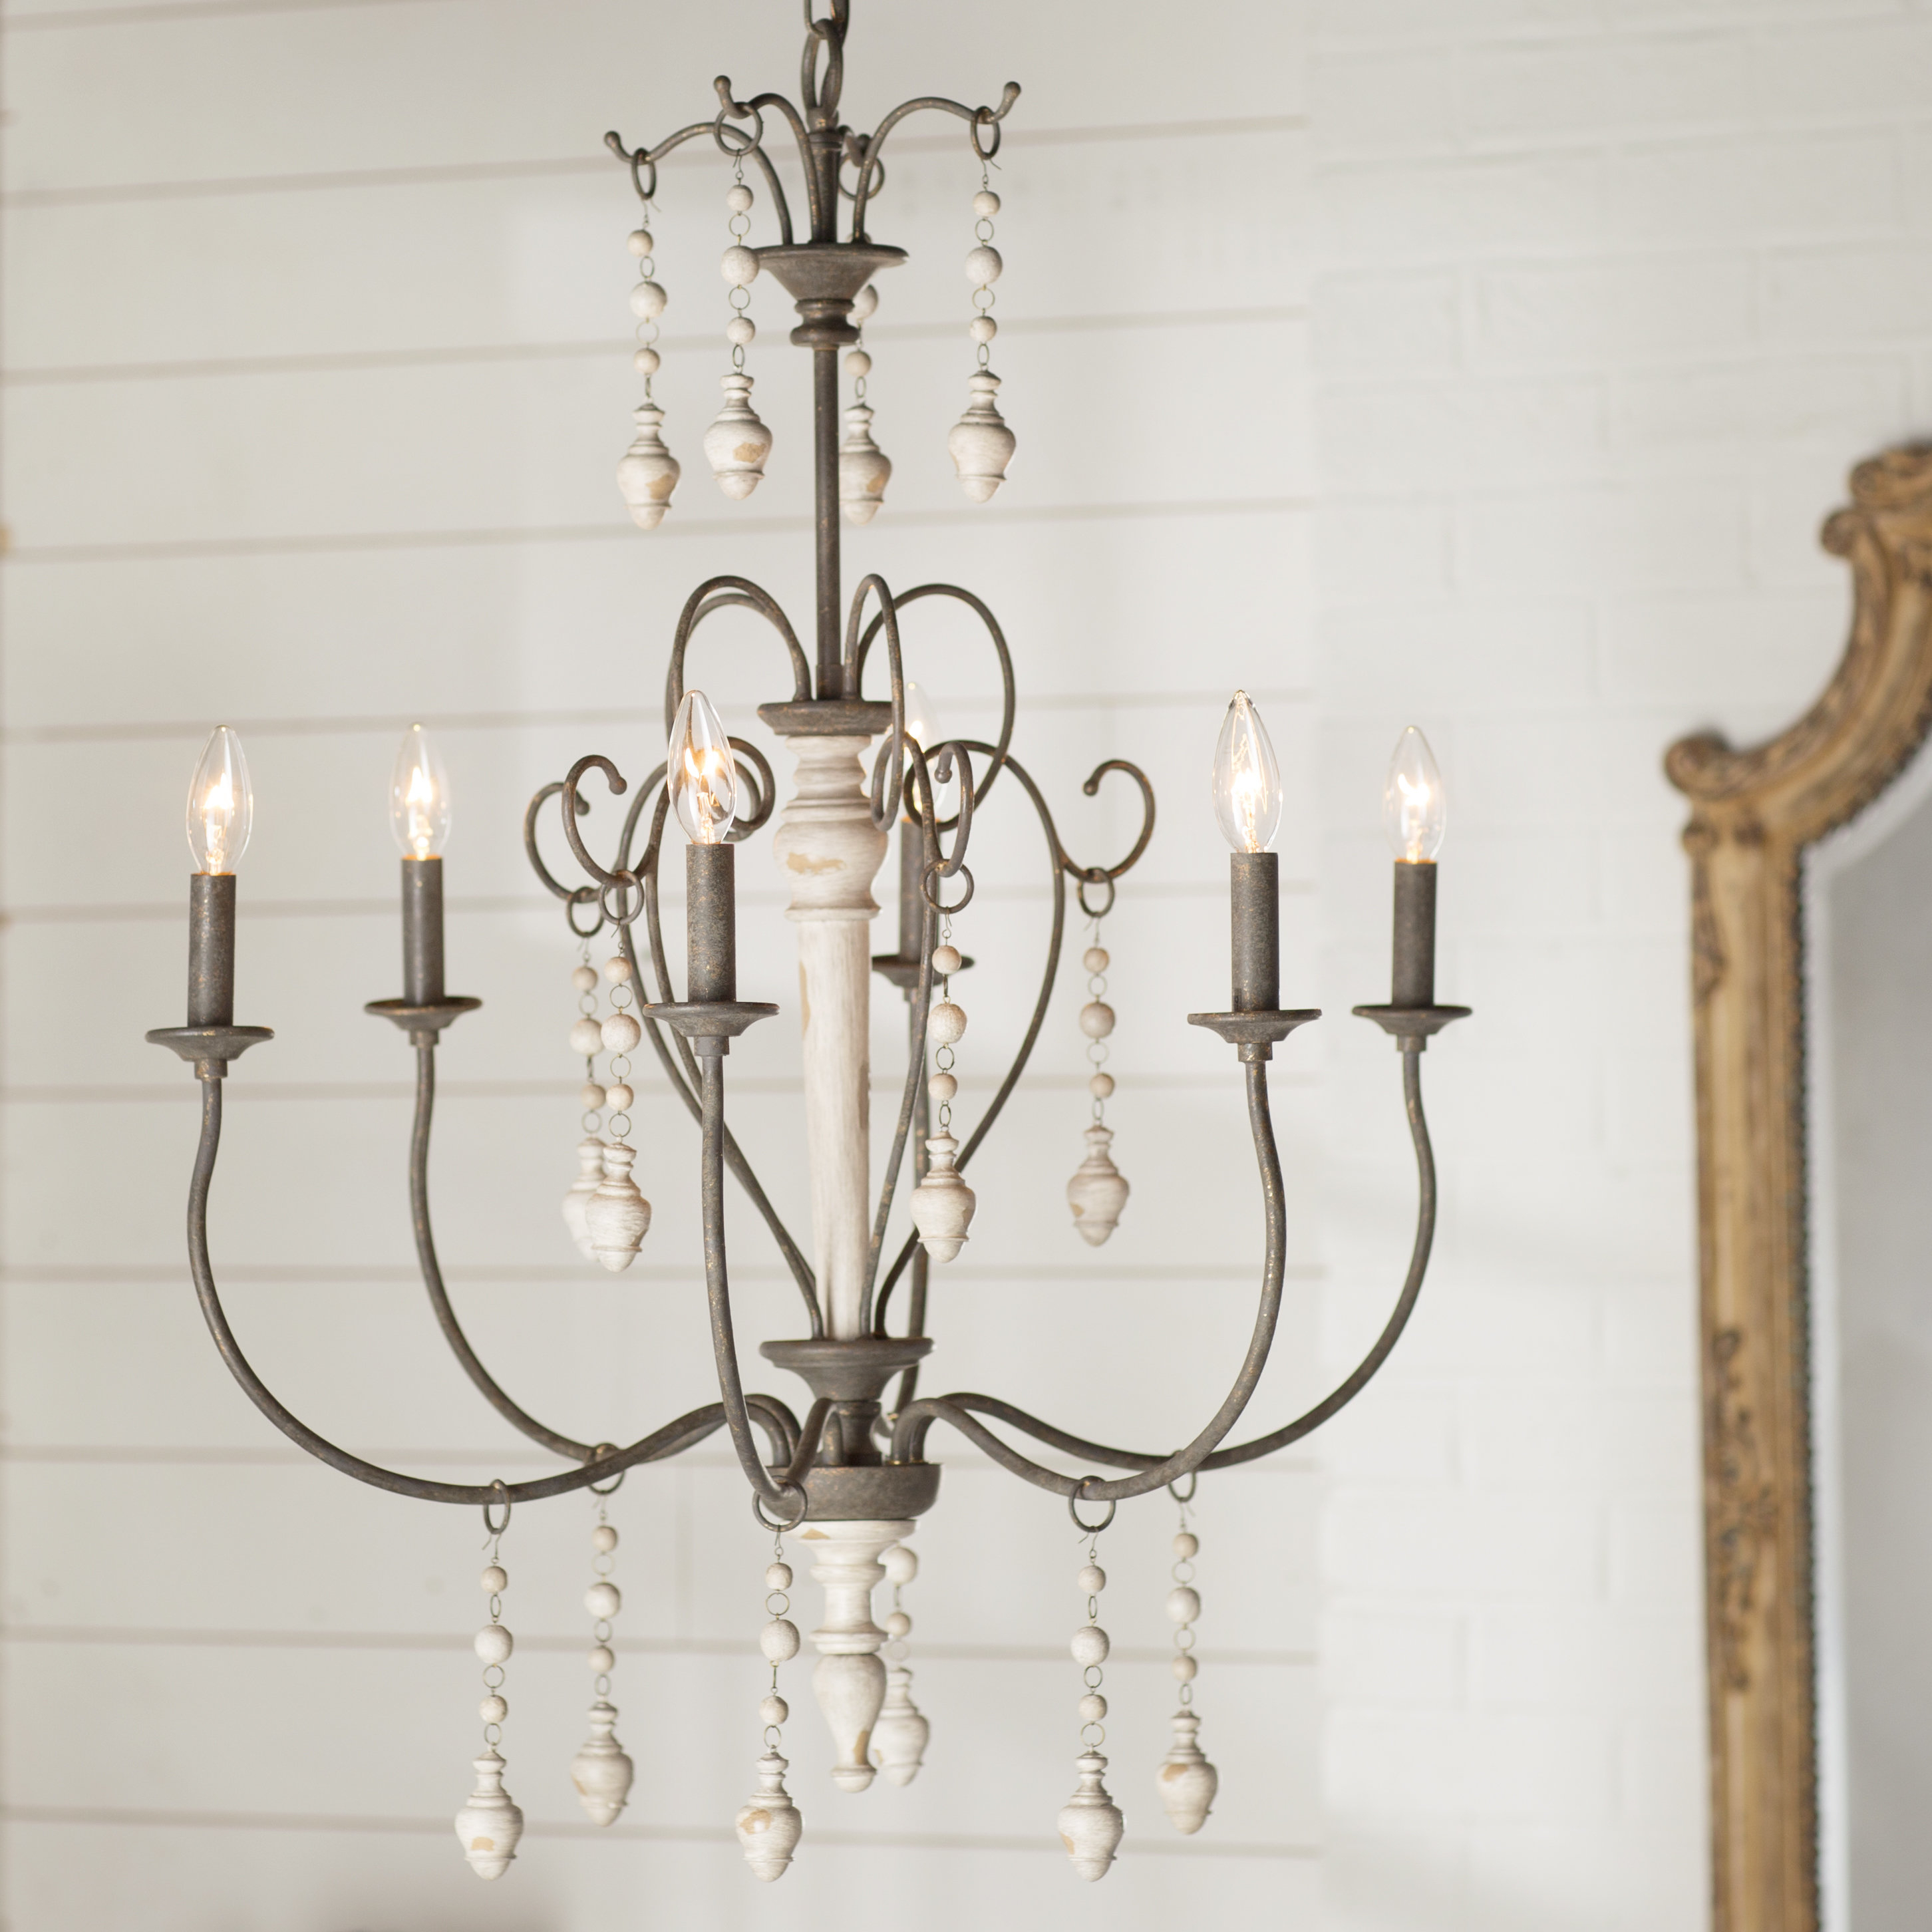 Newest Bouchette Traditional 6 Light Candle Style Chandelier In Shaylee 5 Light Candle Style Chandeliers (View 18 of 25)